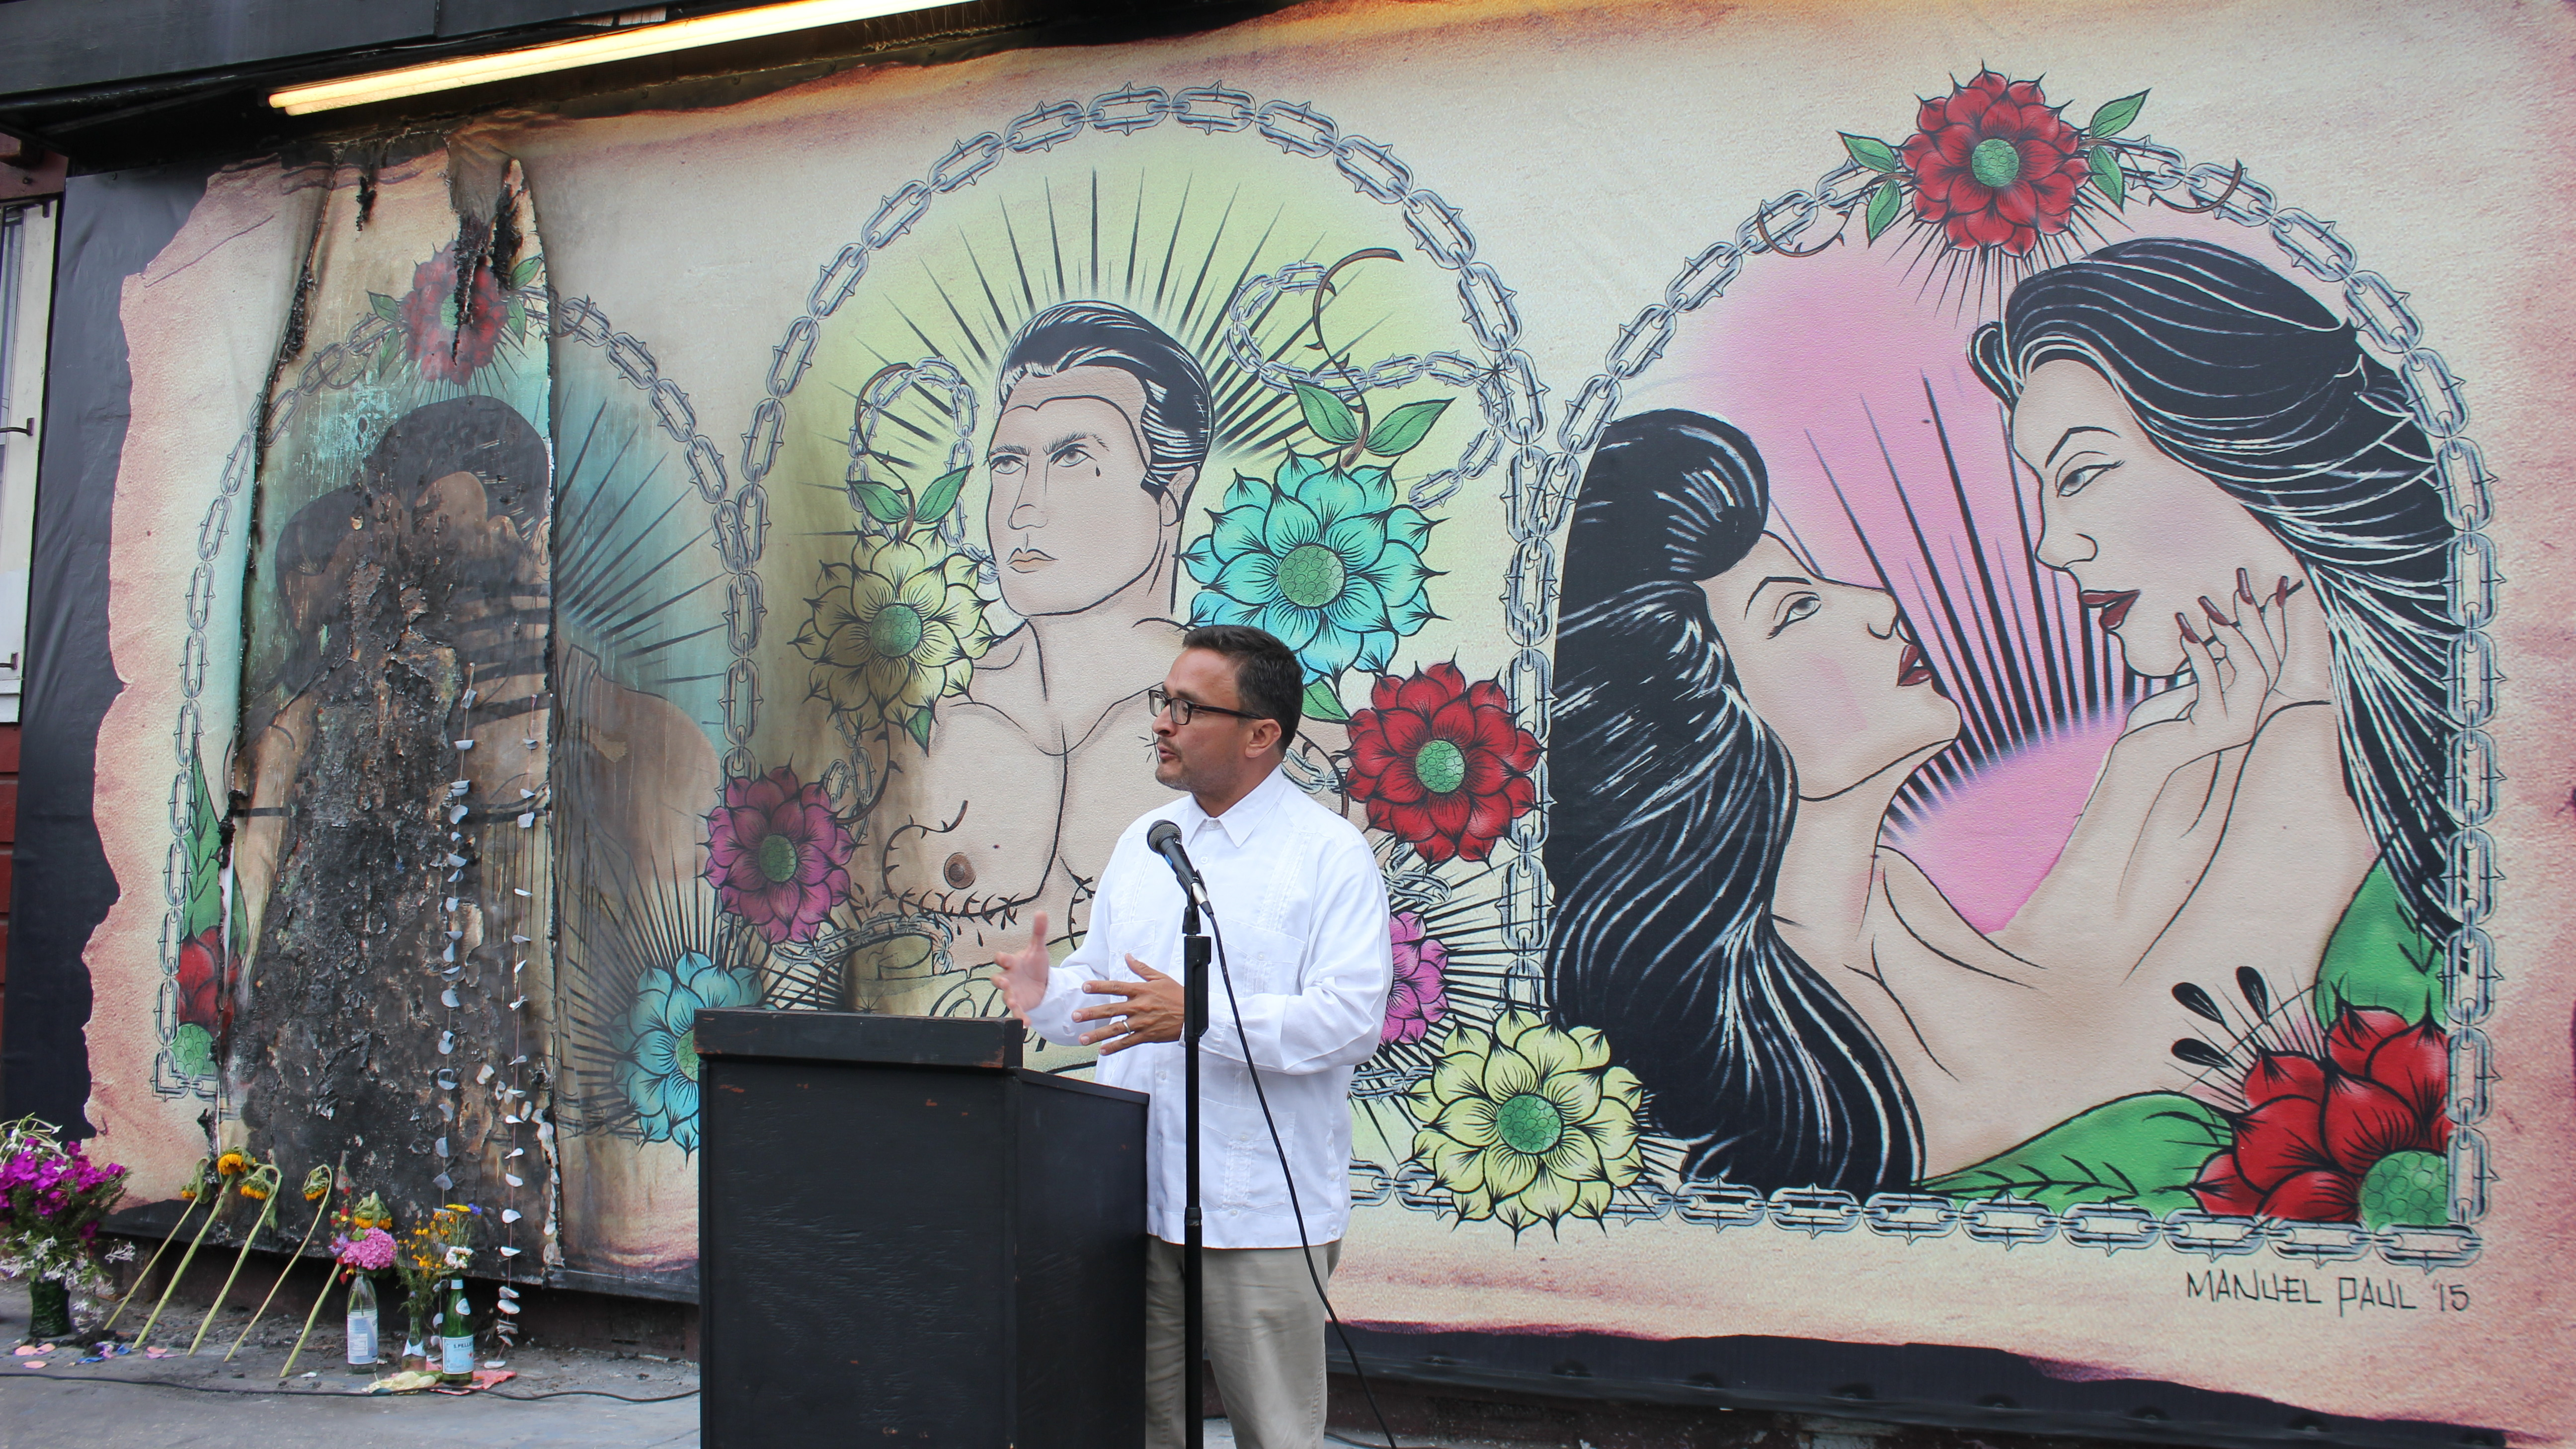 San Francisco Supervisor David Campos stands in front of the vandalized mural. (Photo by Jessica Placzek)